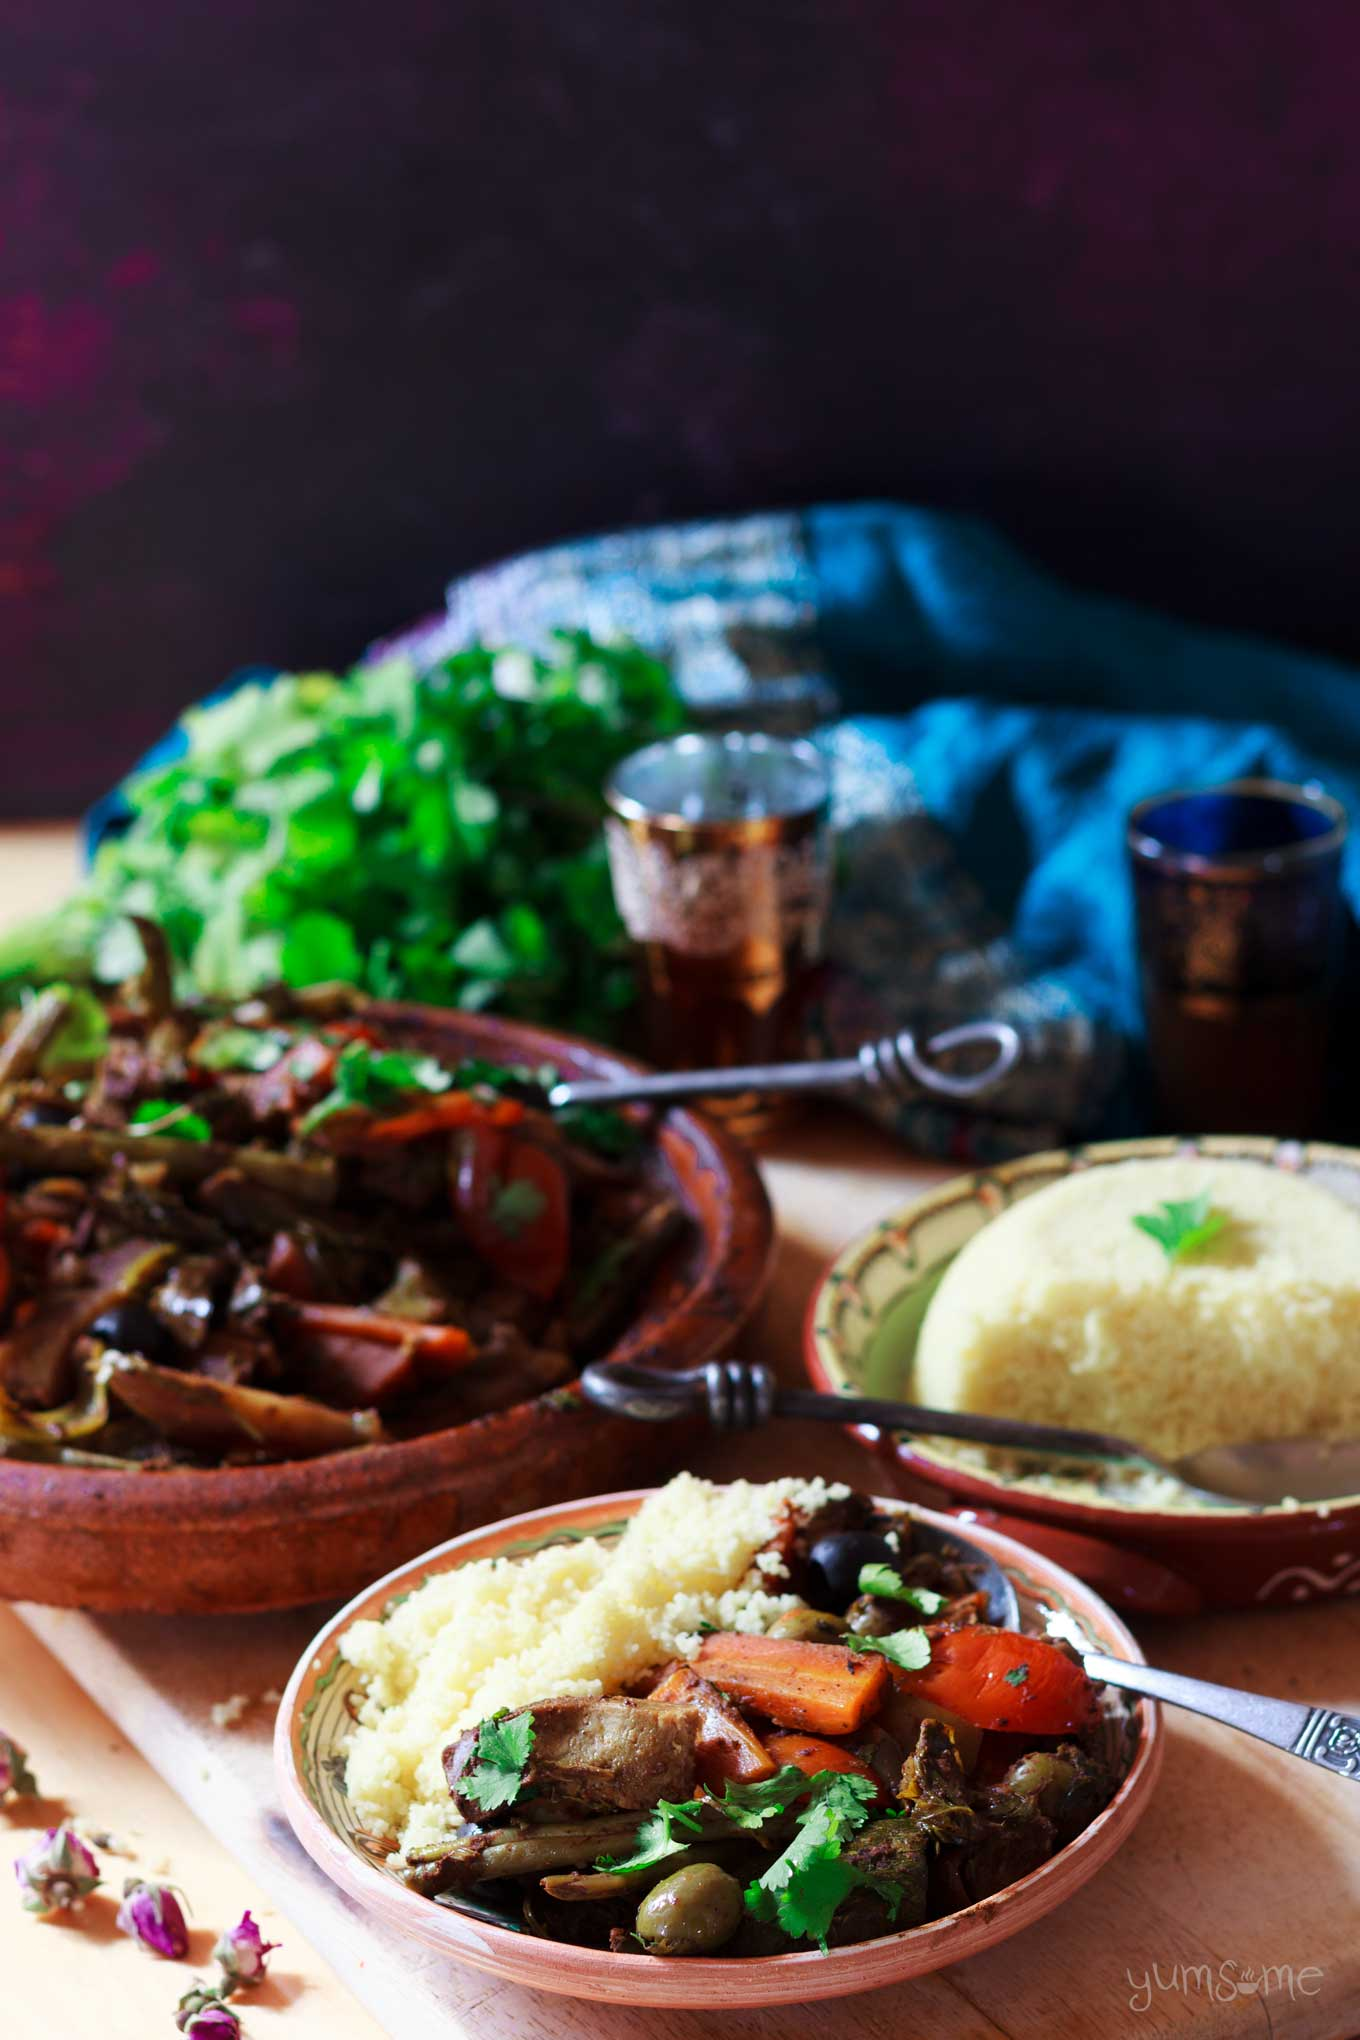 a plate of moroccan vegetable tagine with couscous | yumsome.com